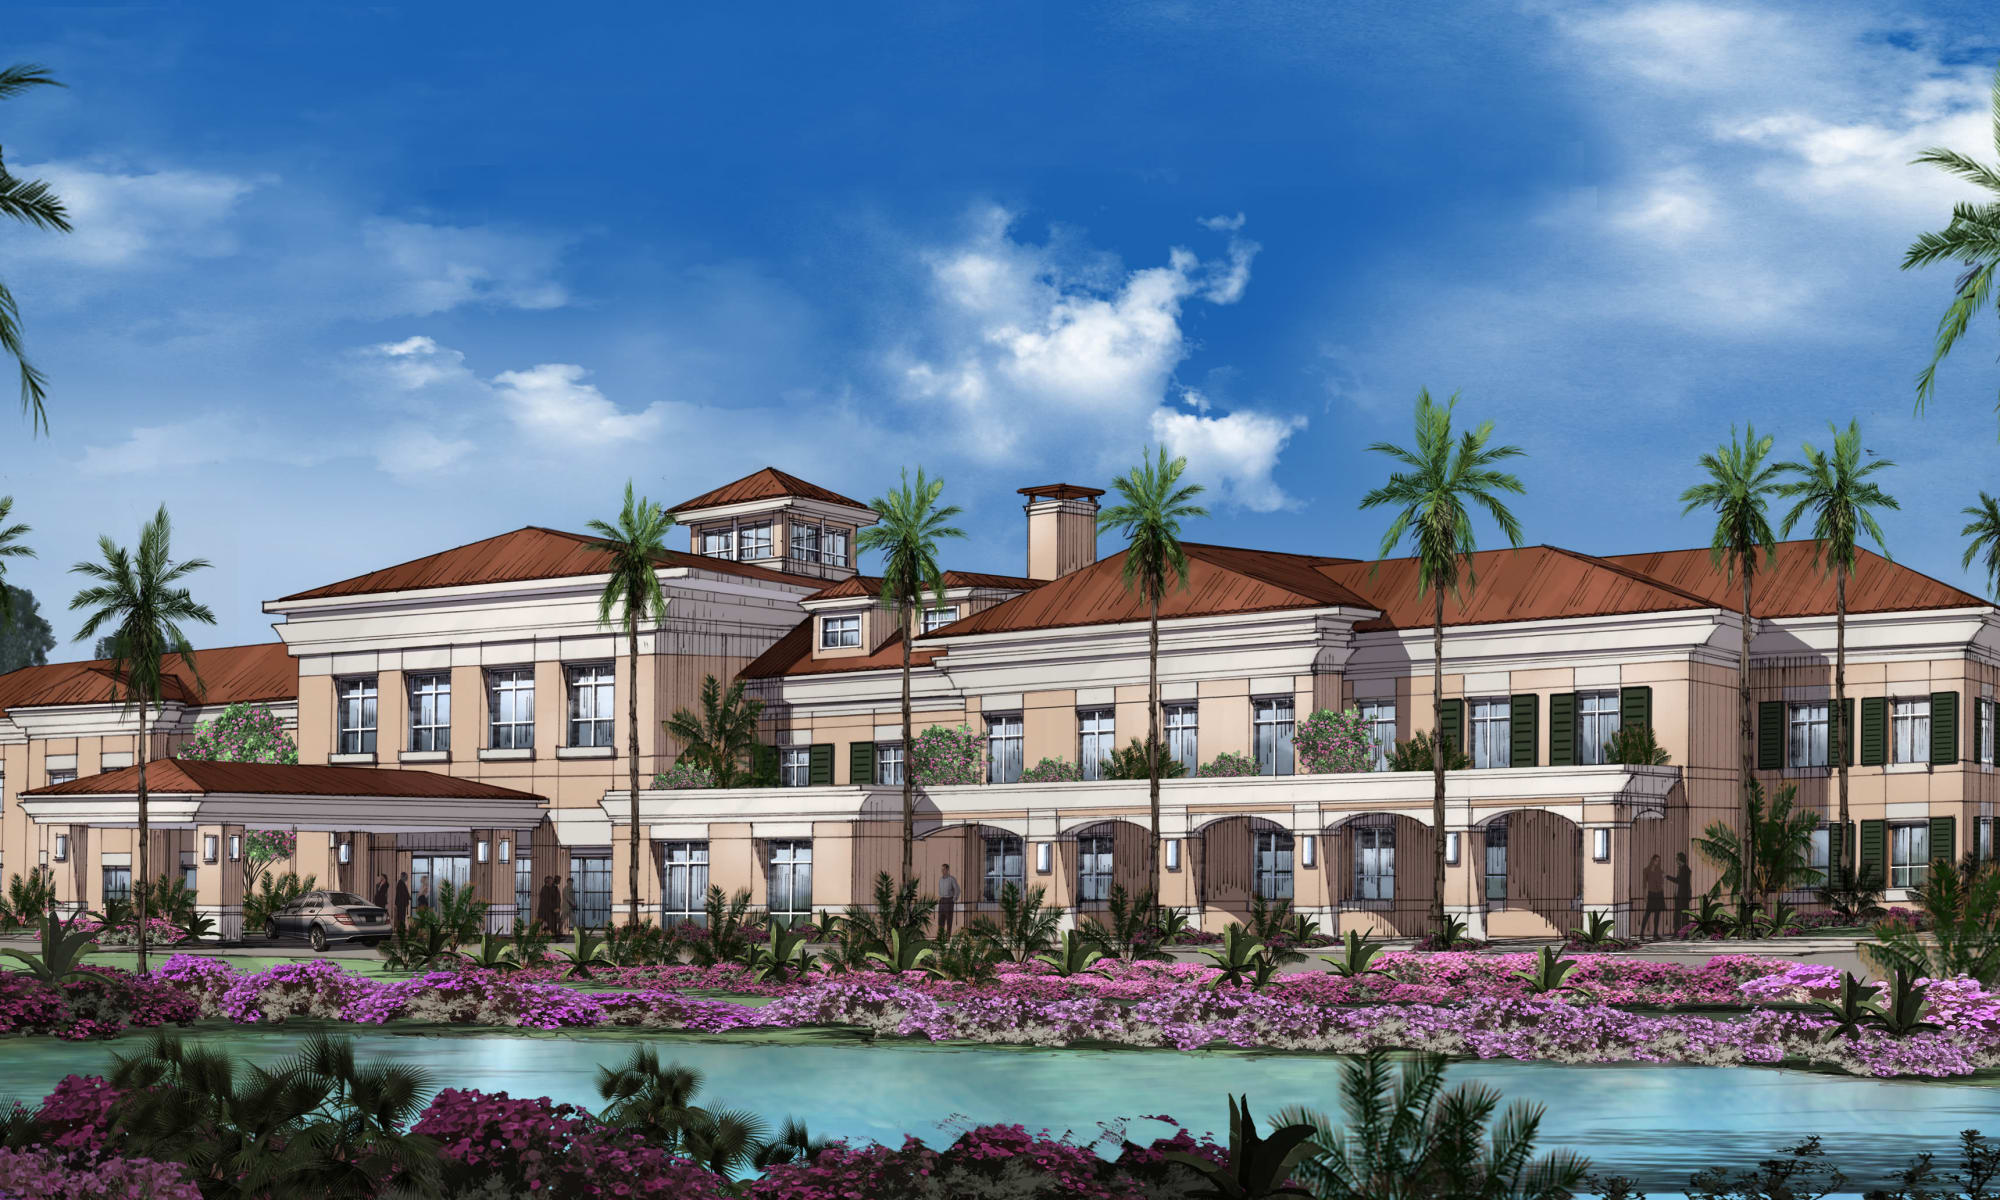 Exquisite senior living facility located in Wellington, Florida